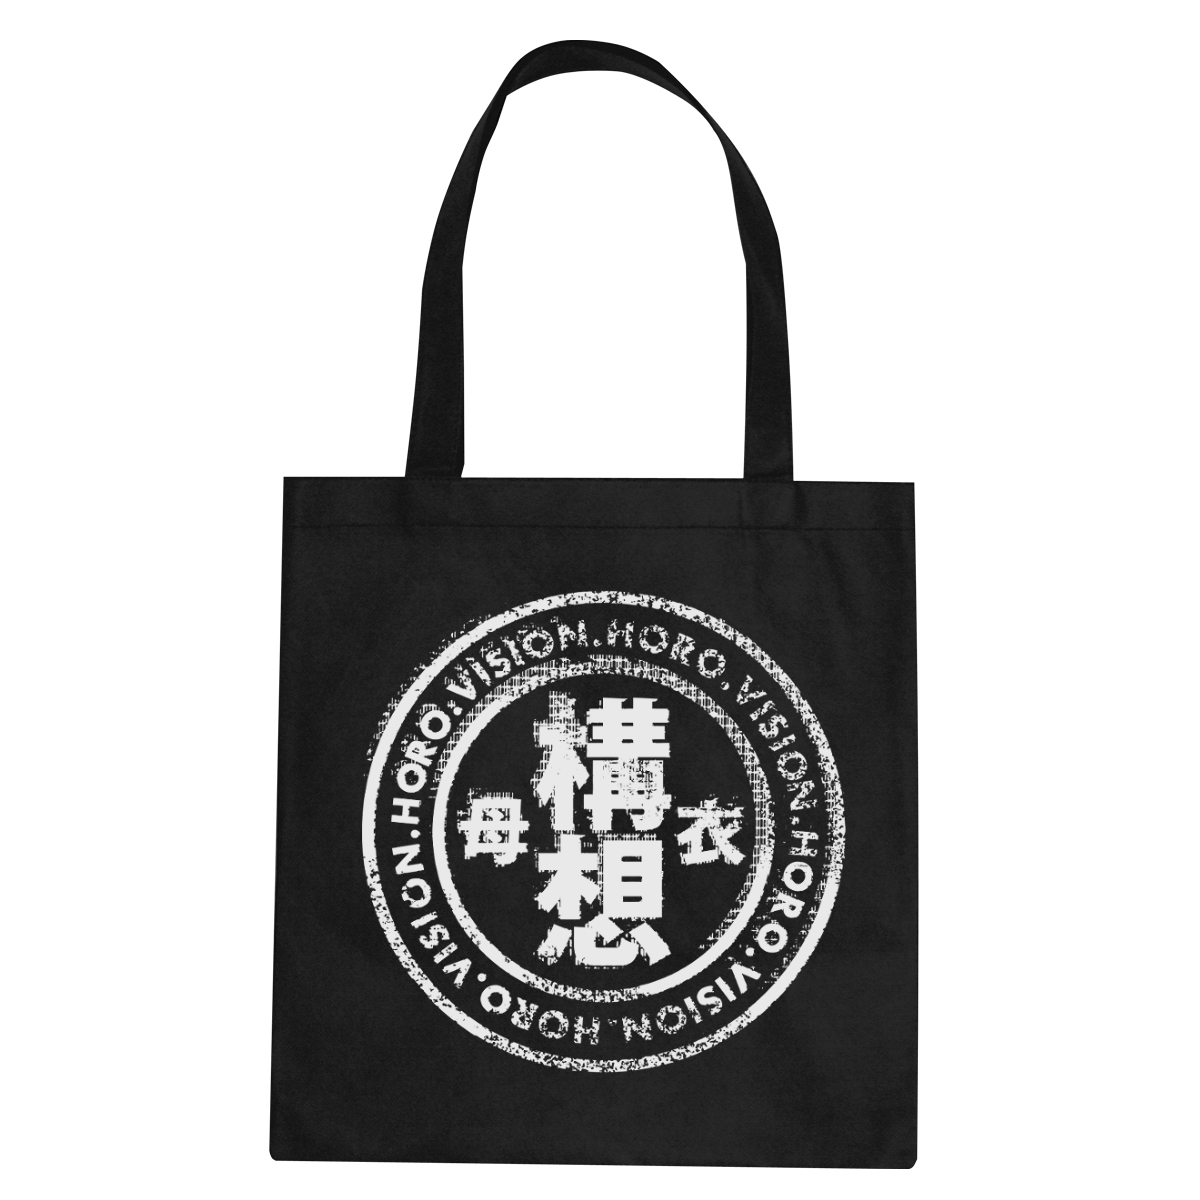 Horo Vision 'Distorted' Tote Bag